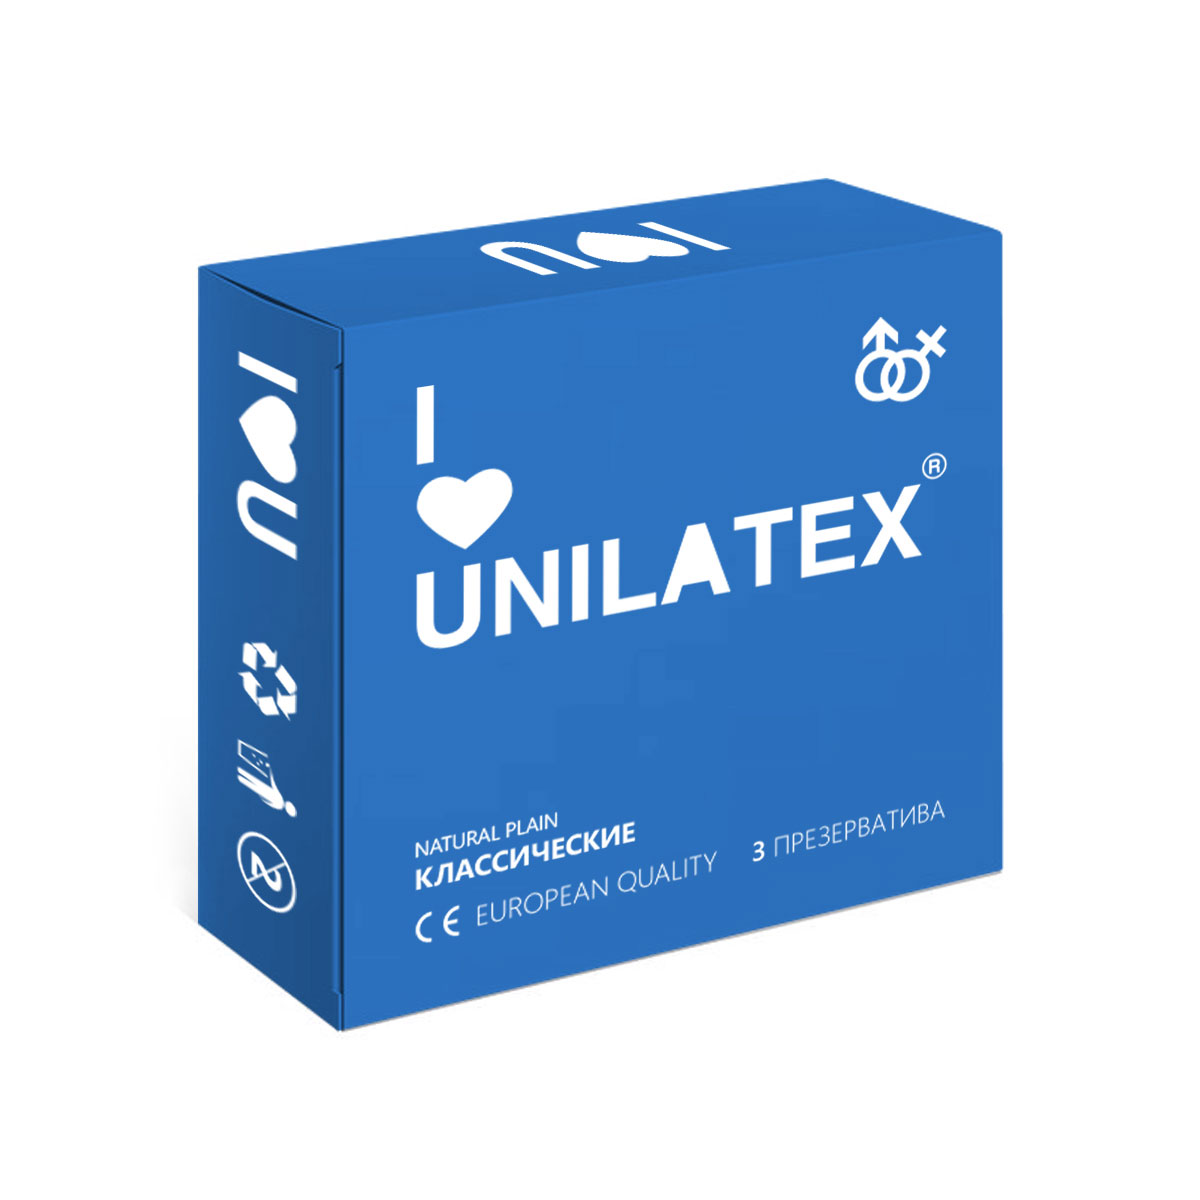 Презервативы Unilatex Natural Plain, 3 шт тэдди lace and wet look teddy размер xl xxl